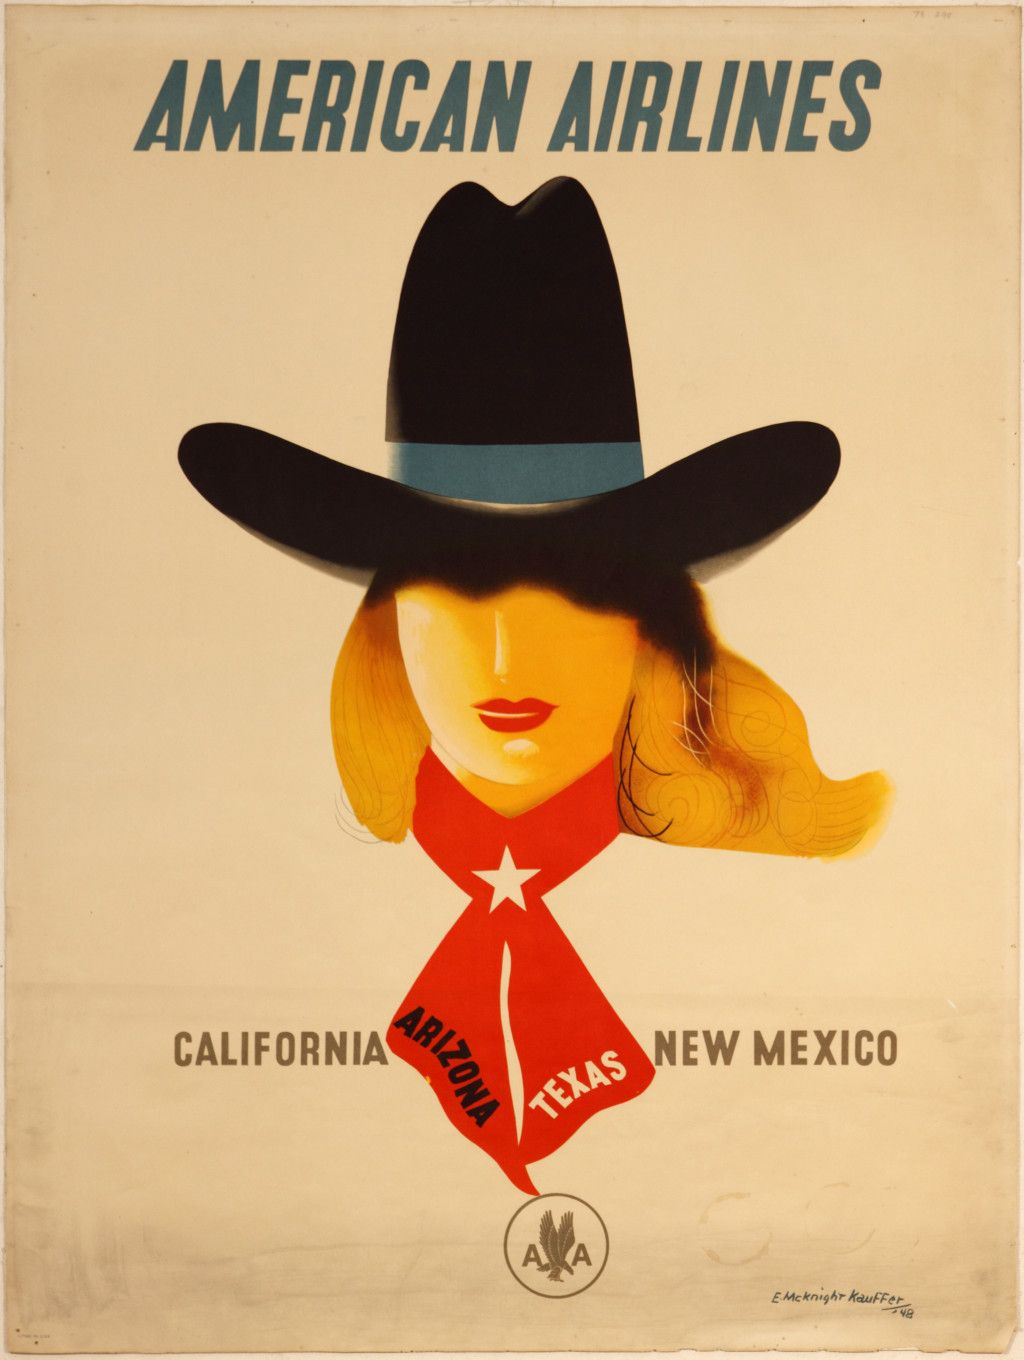 American Airlines Travel Poster, California, Arizona